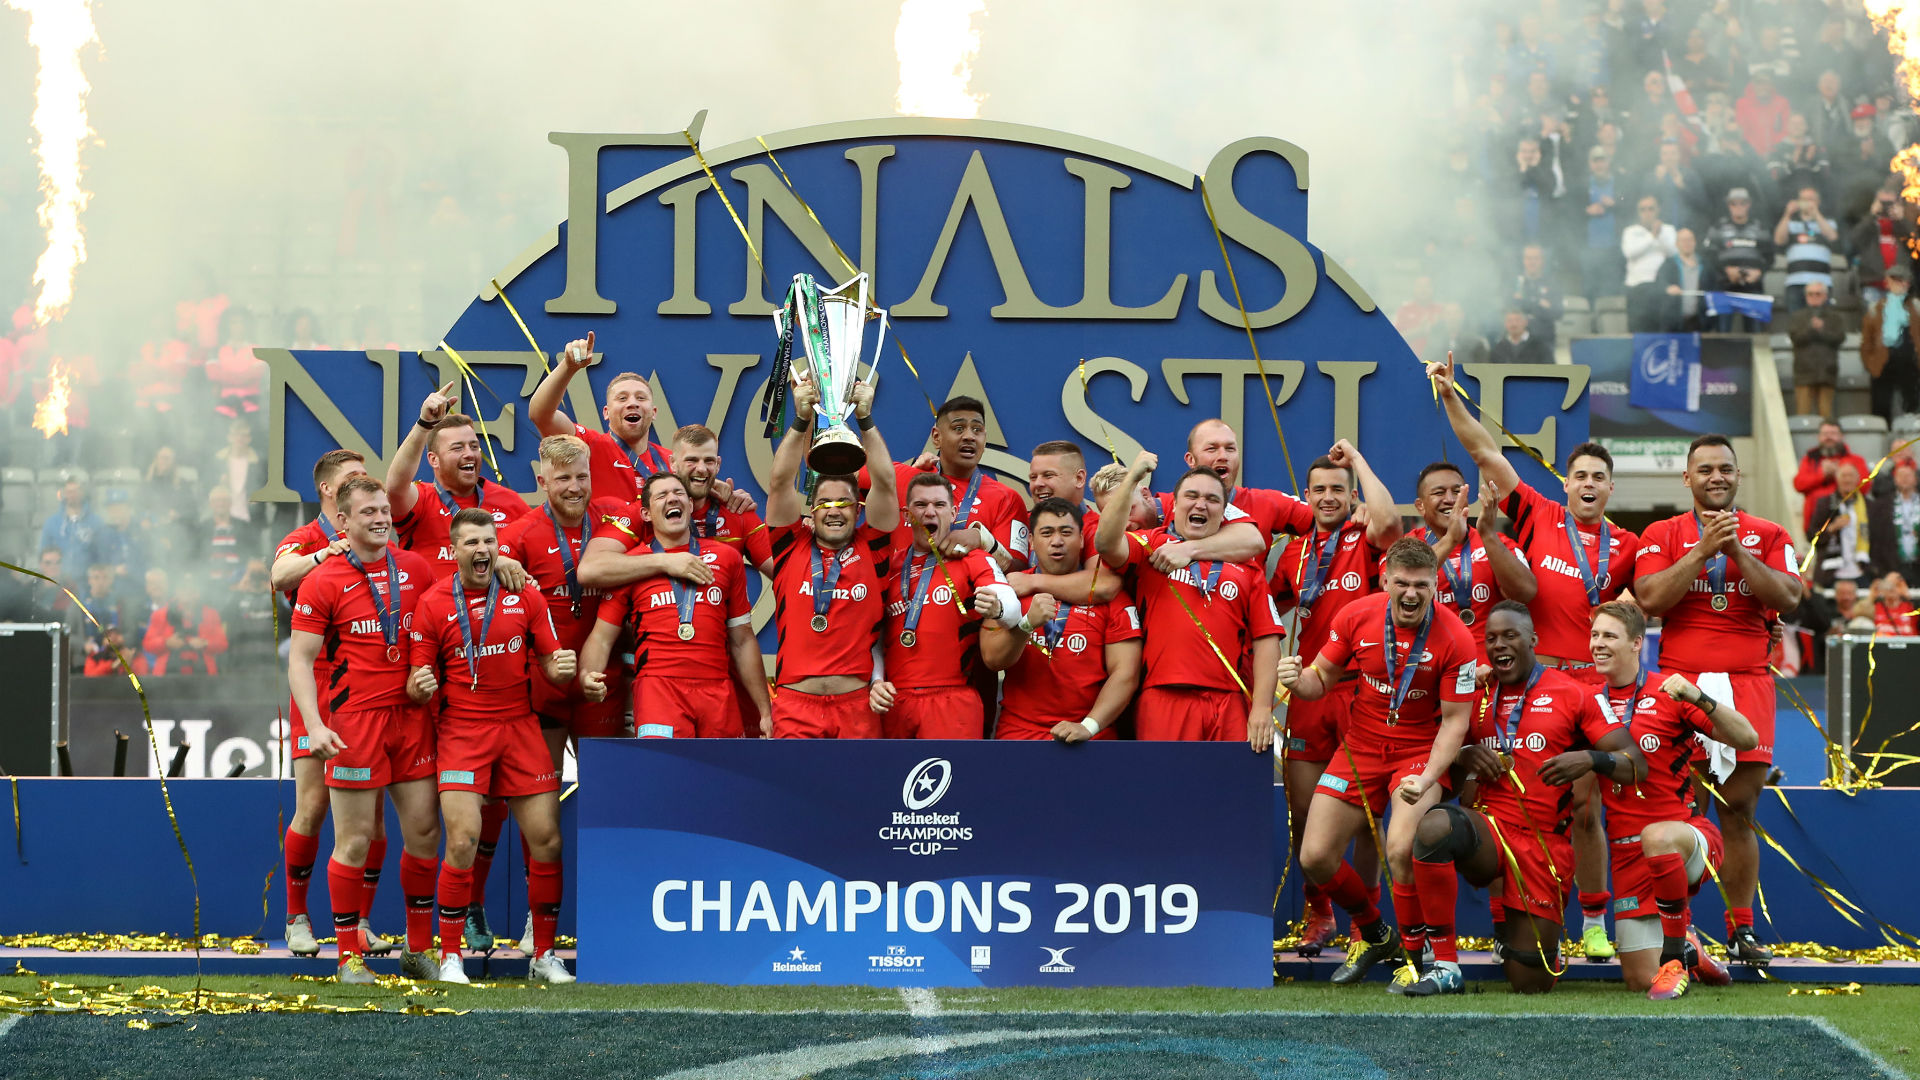 Saracens could face EPCR action for snubbing Champions Cup launch